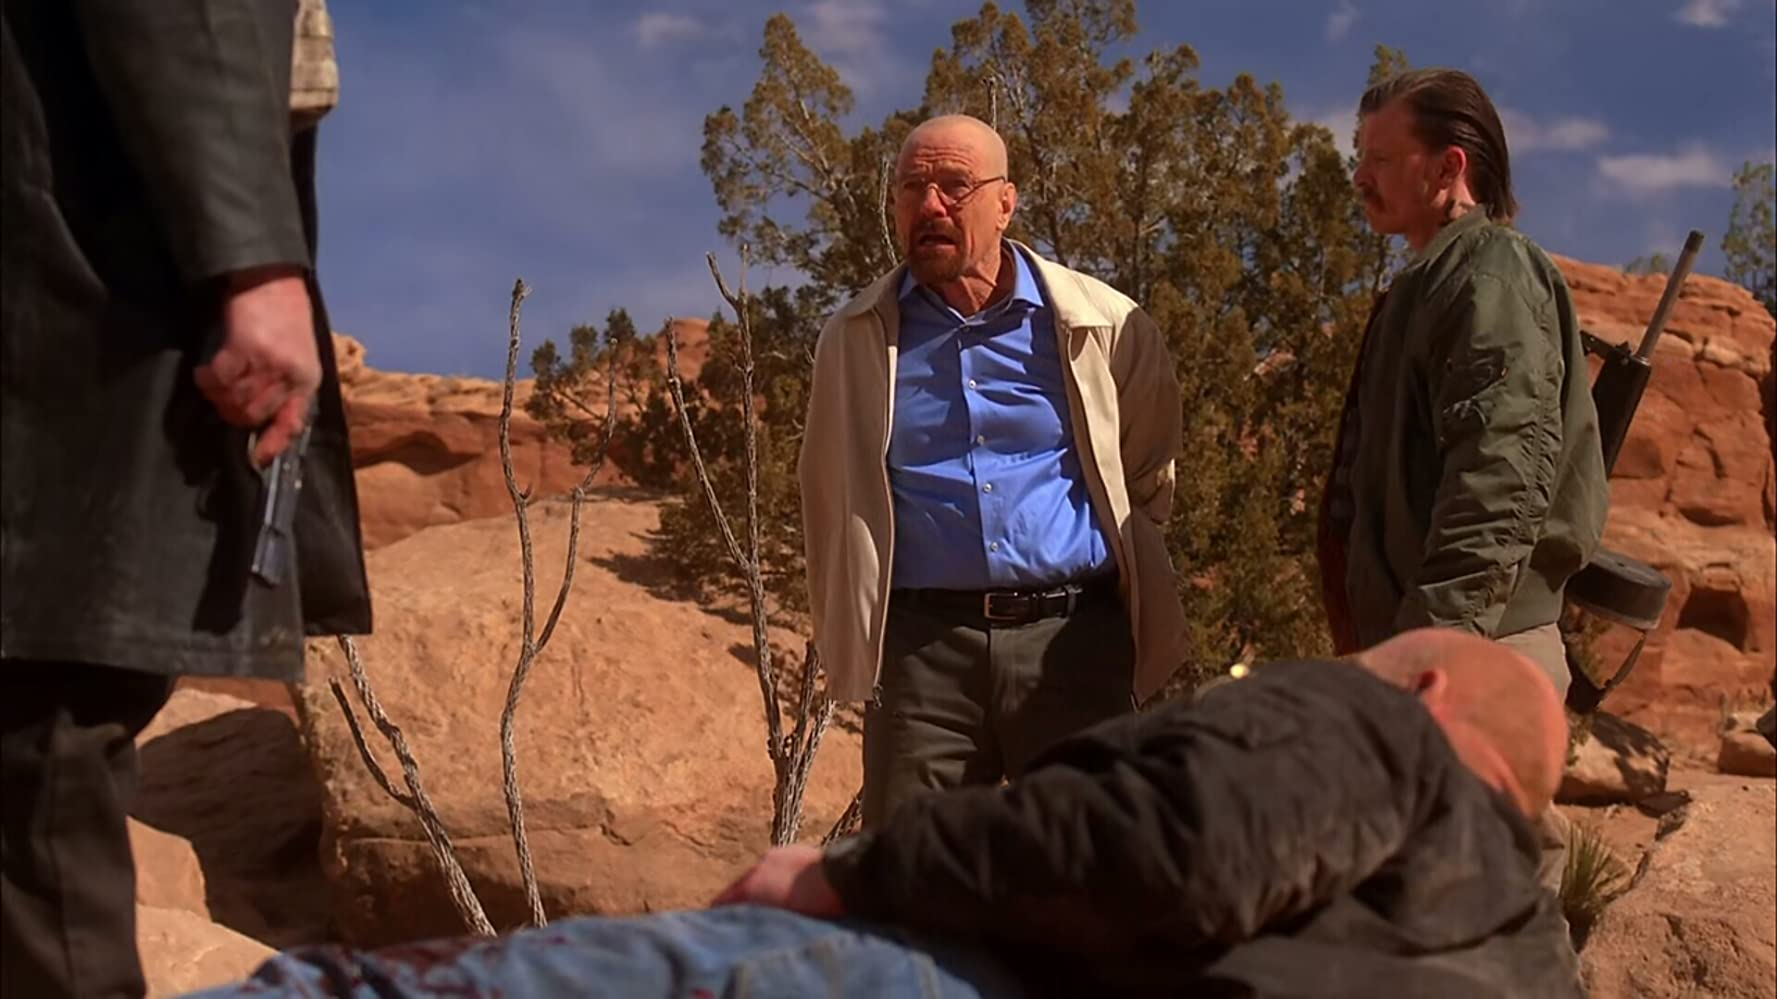 Michael Bowen, Bryan Cranston, and Dean Norris in Breaking Bad (2008)